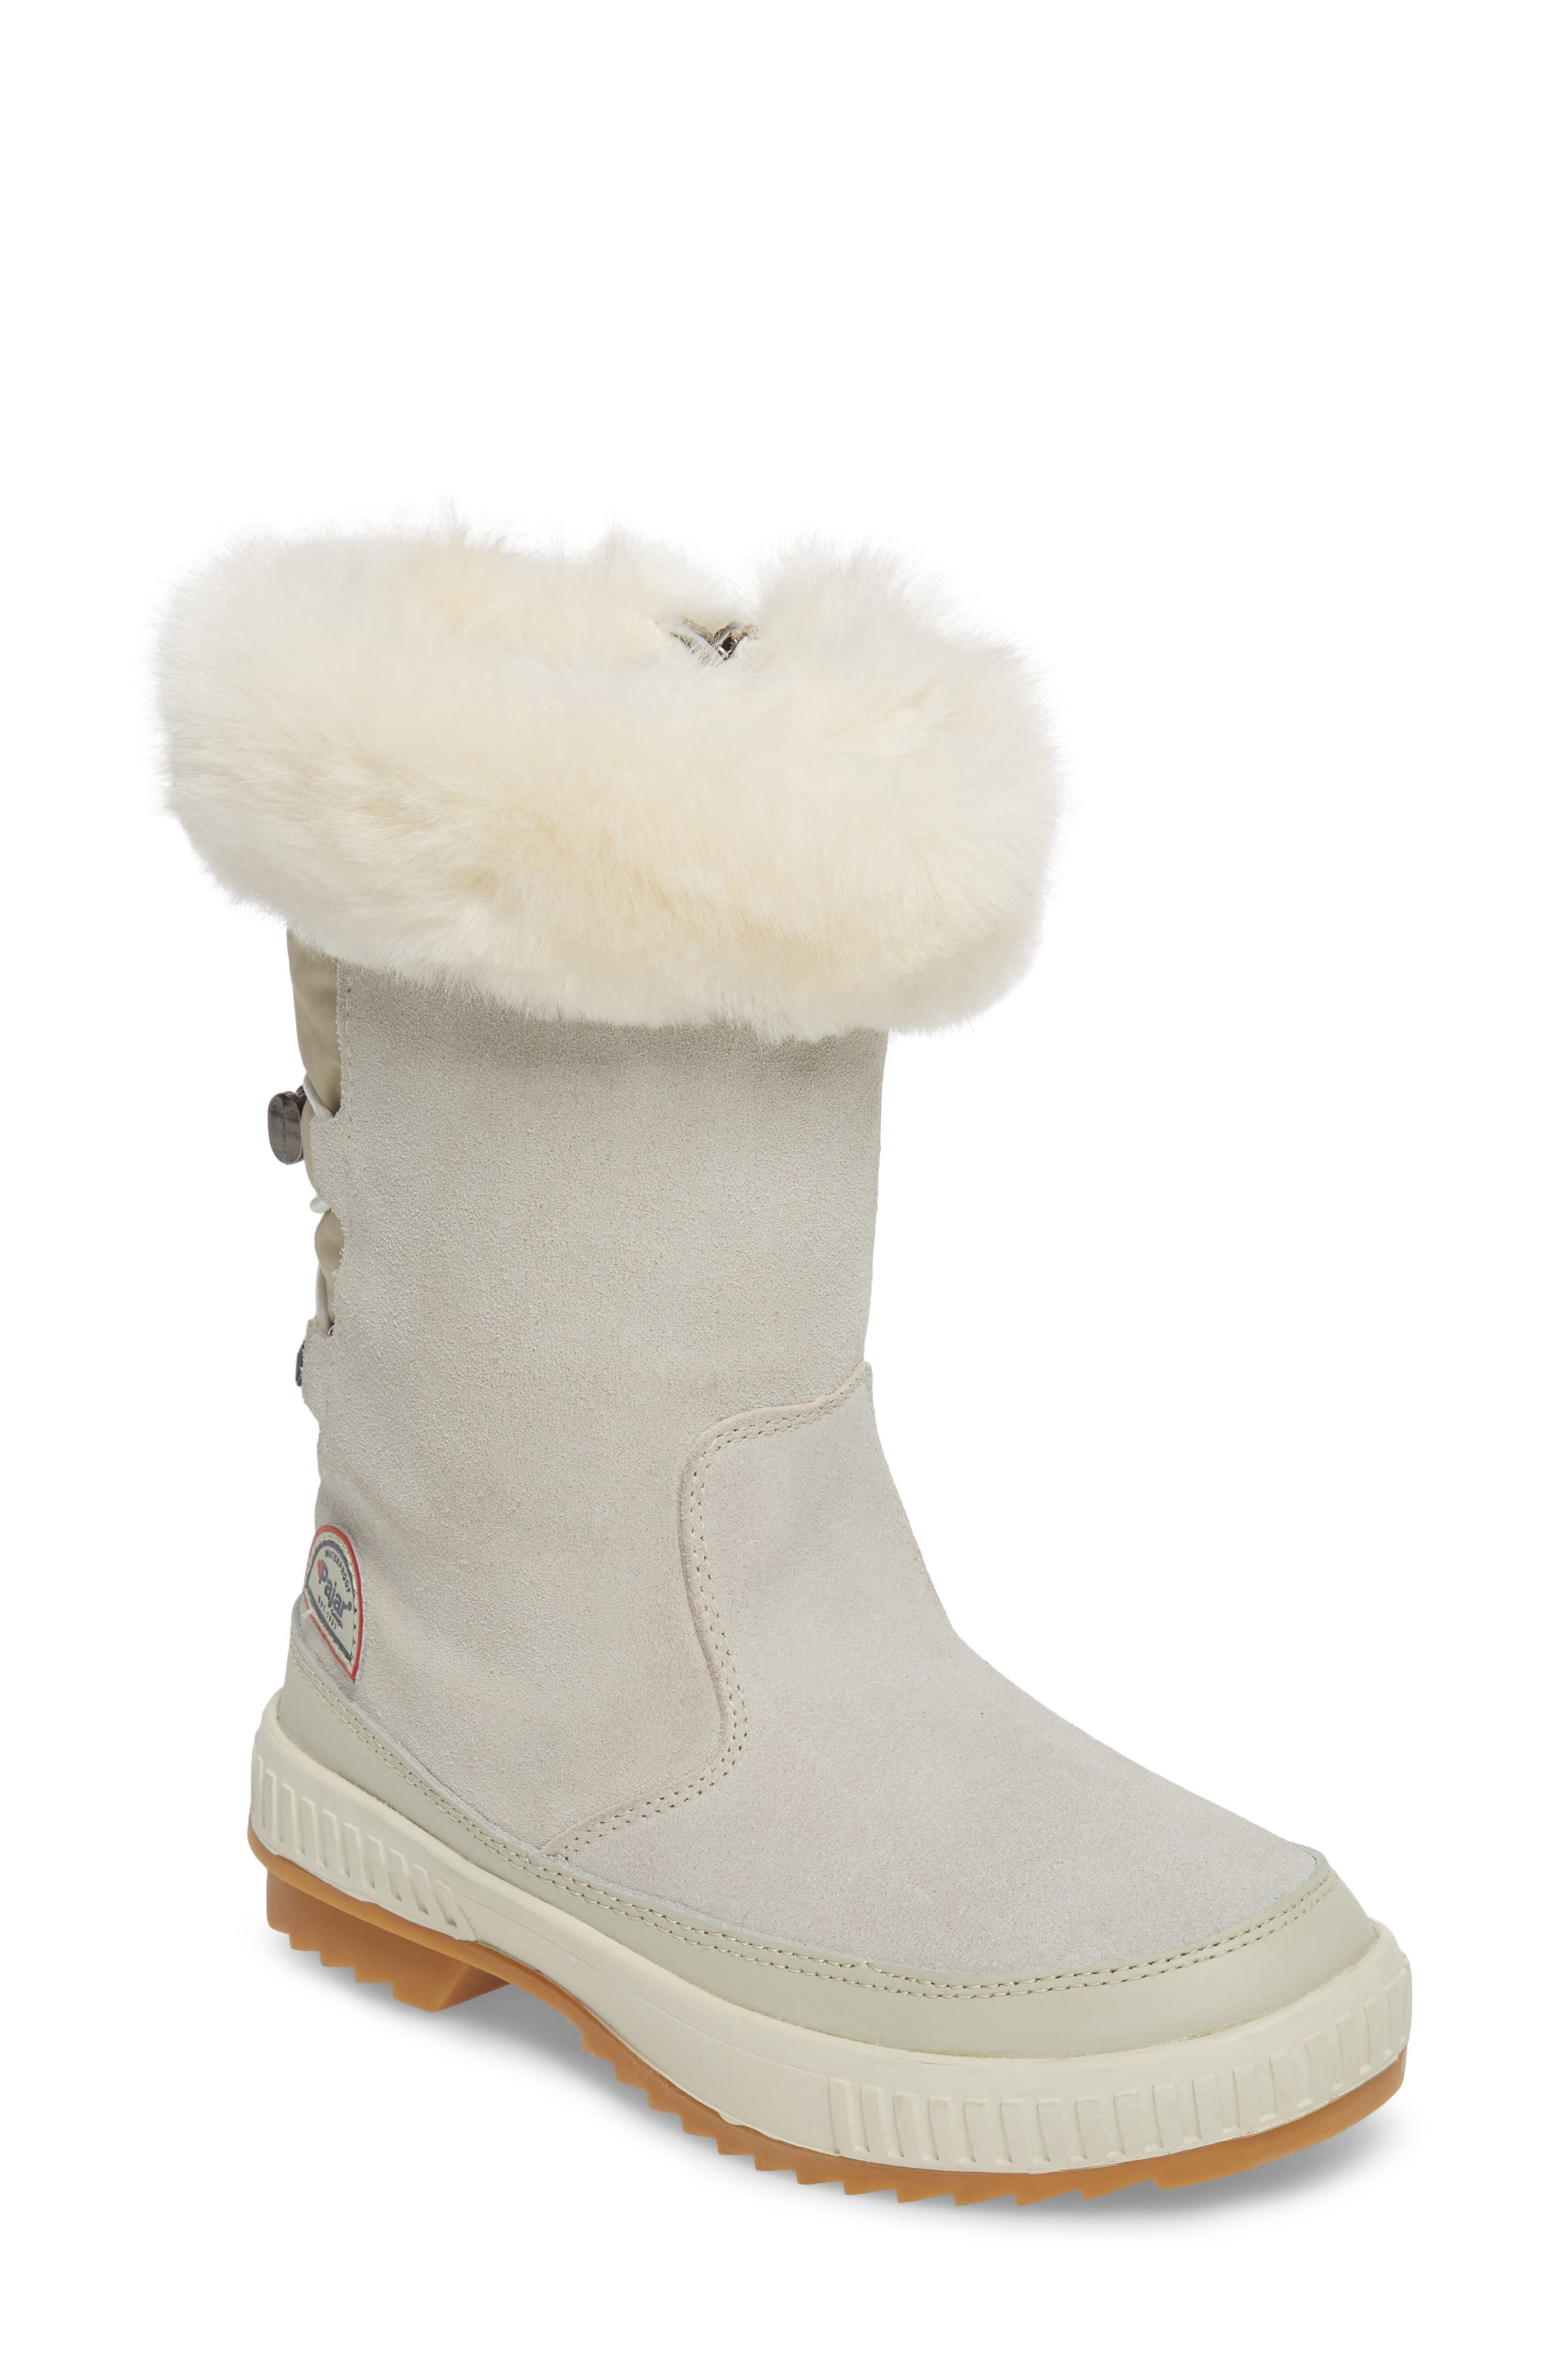 Kady Waterproof Insulated Winter Boot with Plush Cuff,                         Main,                         color, 100